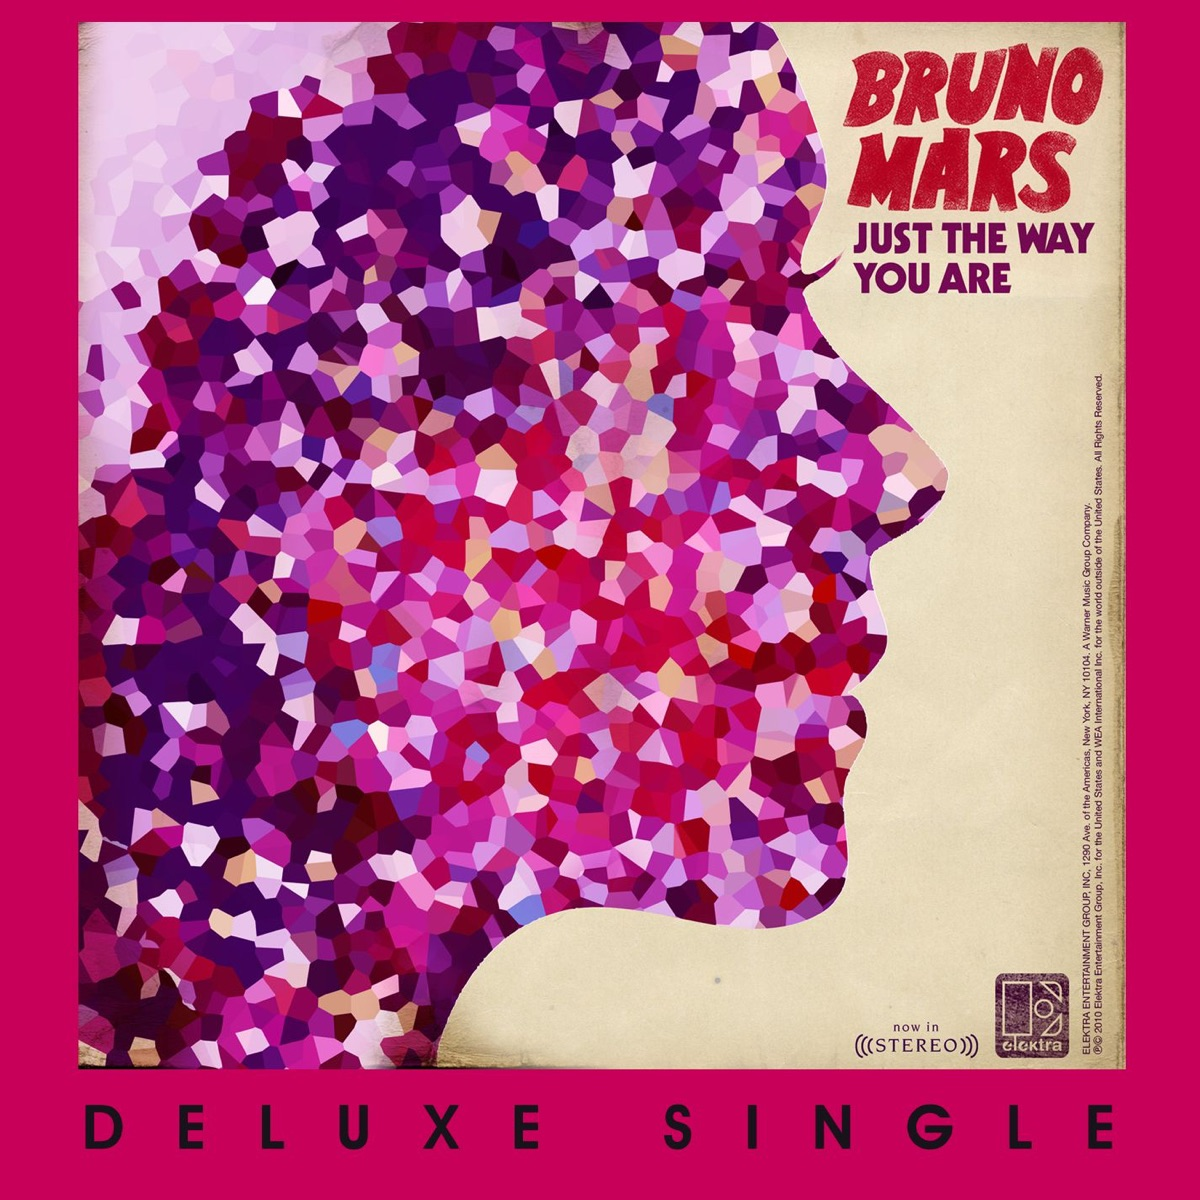 Just the Way You Are - Deluxe Single Bruno Mars CD cover